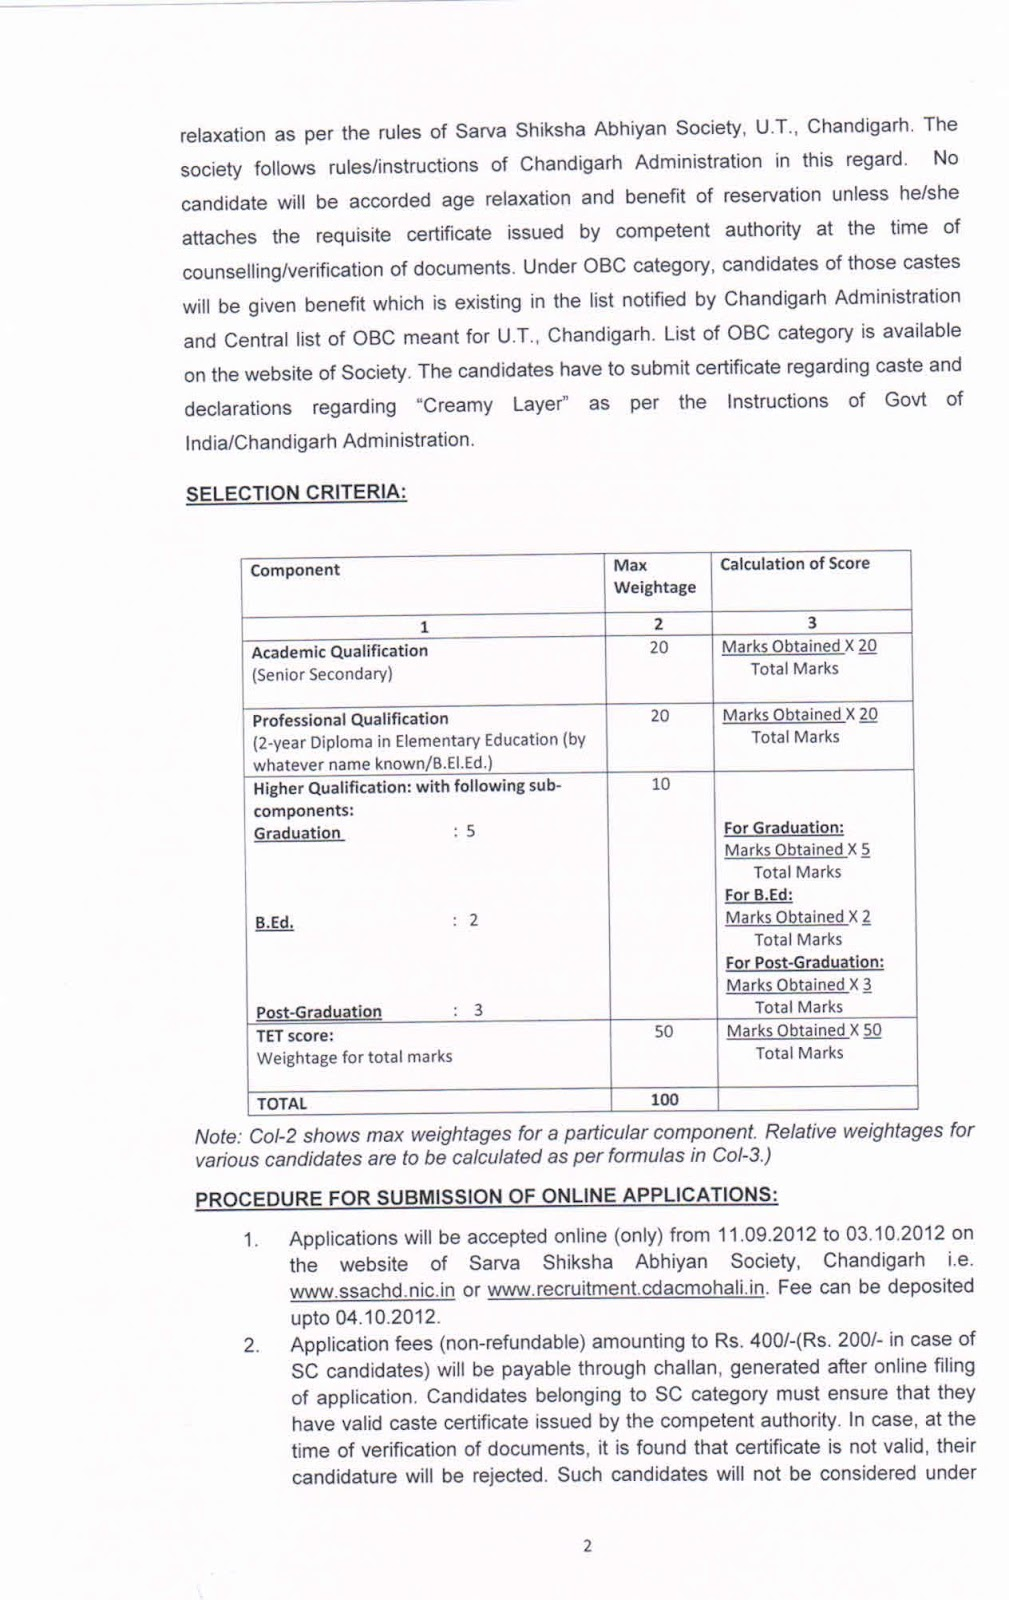 Recruitment for 654 posts of jbts on contract basis up to 31 03 2013 under sarva siksha abhiyan ssa chandigarh last date 03 10 2012